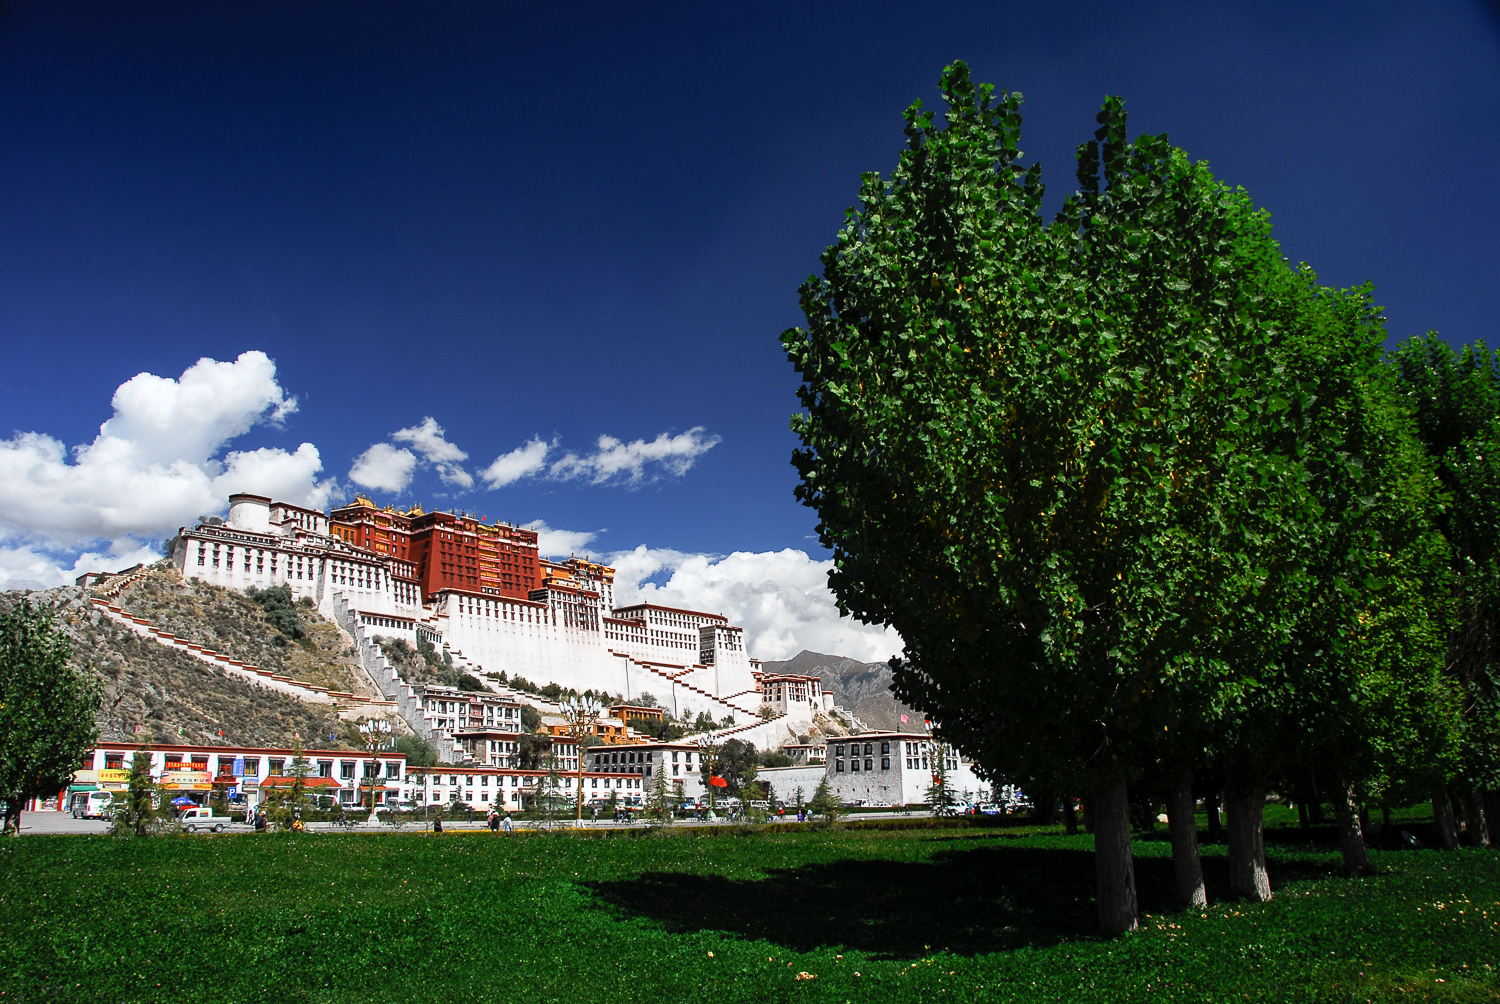 The majesty of Lhasa's Potala Palace, former chief residence of the Dalai Lama.